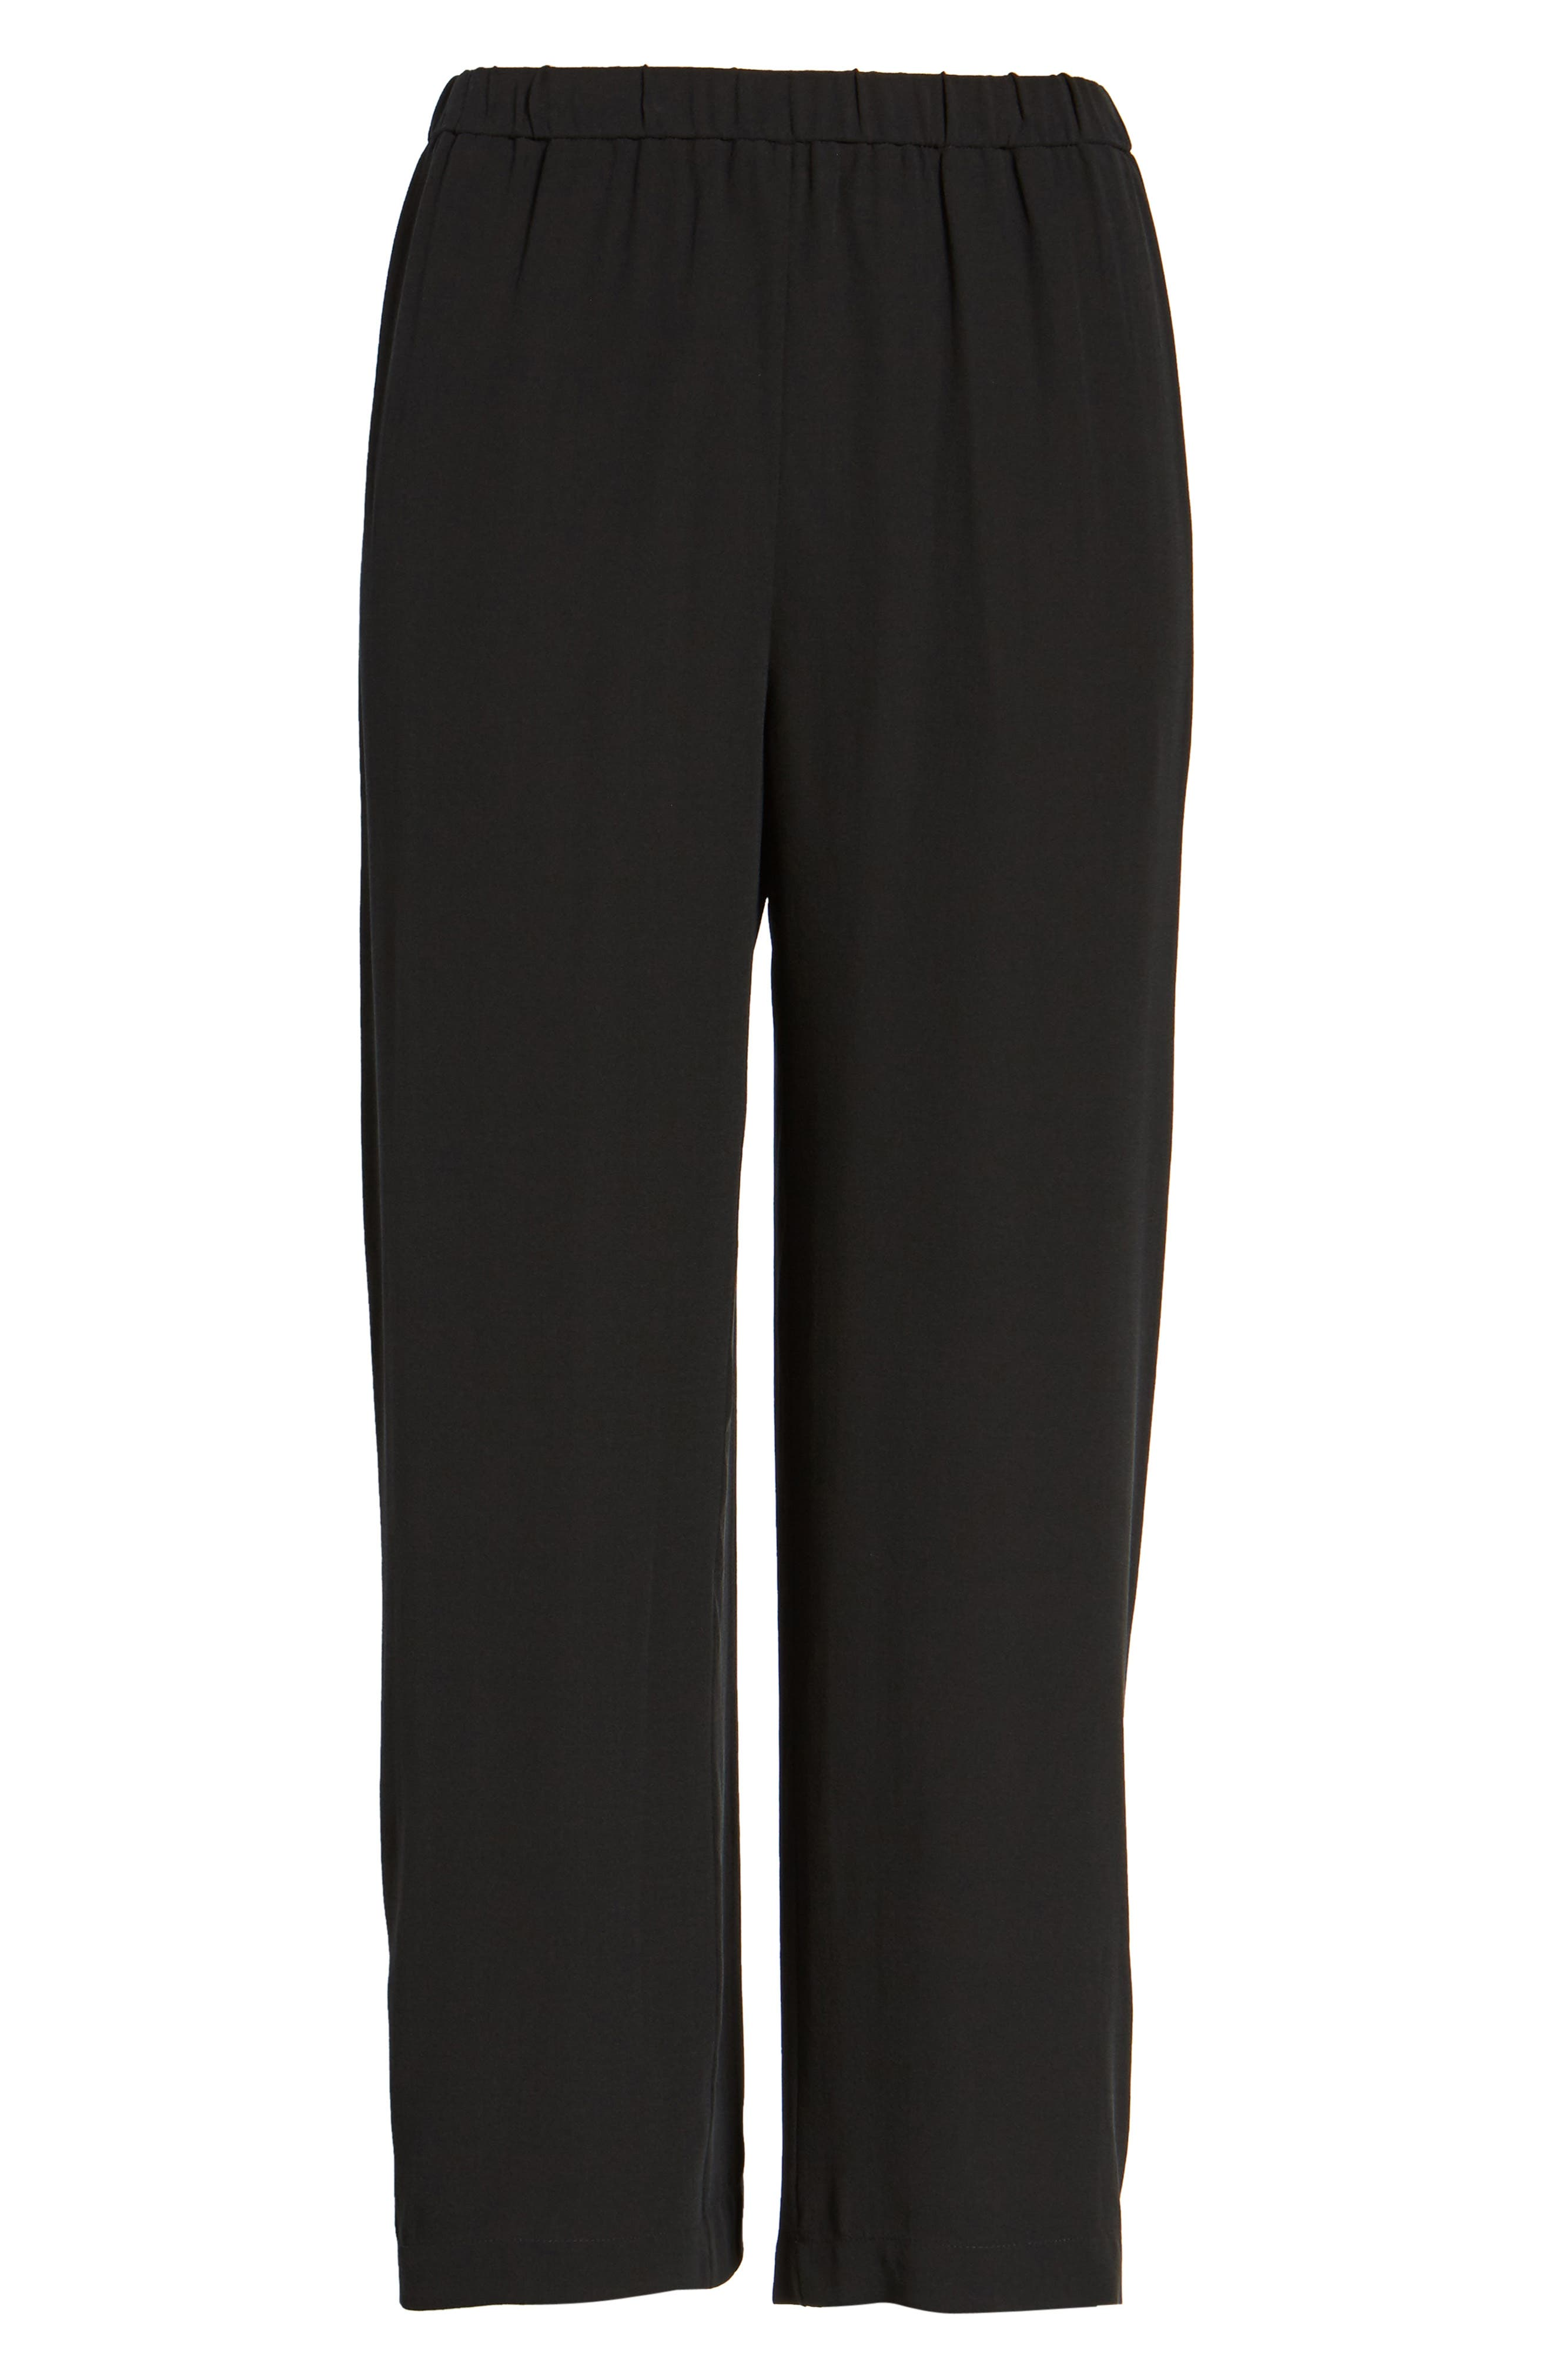 EILEEN FISHER,                             Silk Crop Pants,                             Alternate thumbnail 7, color,                             BLACK